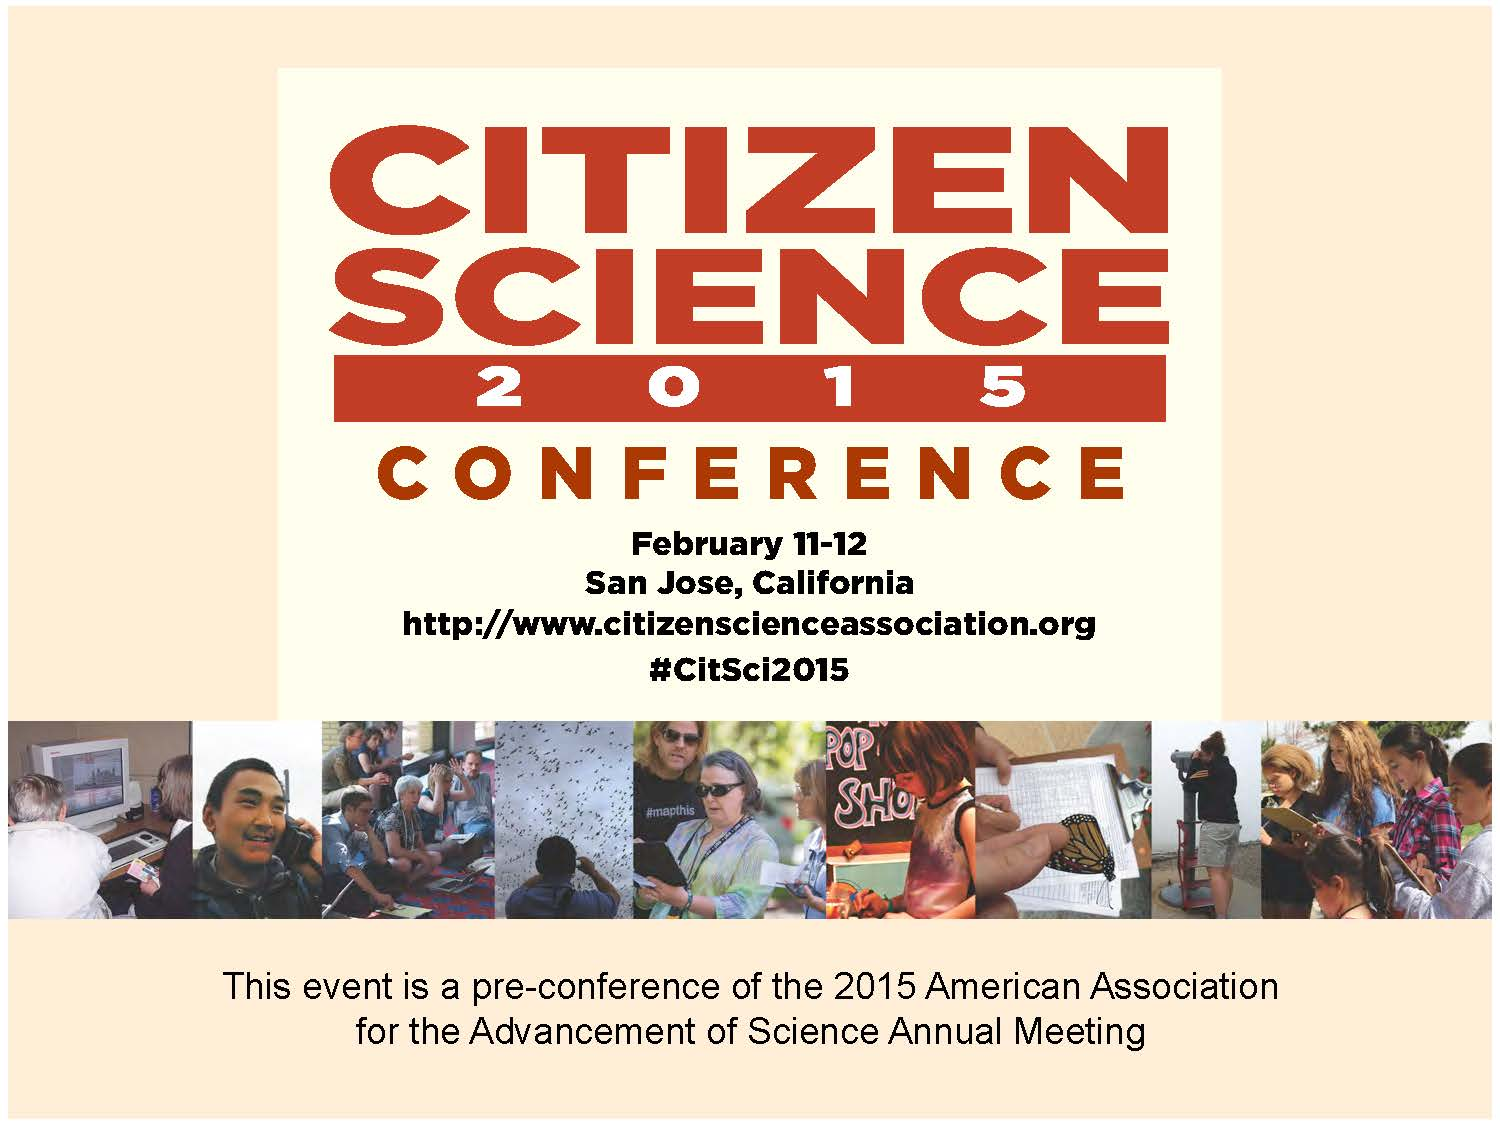 Citizen Science 2015 flyer